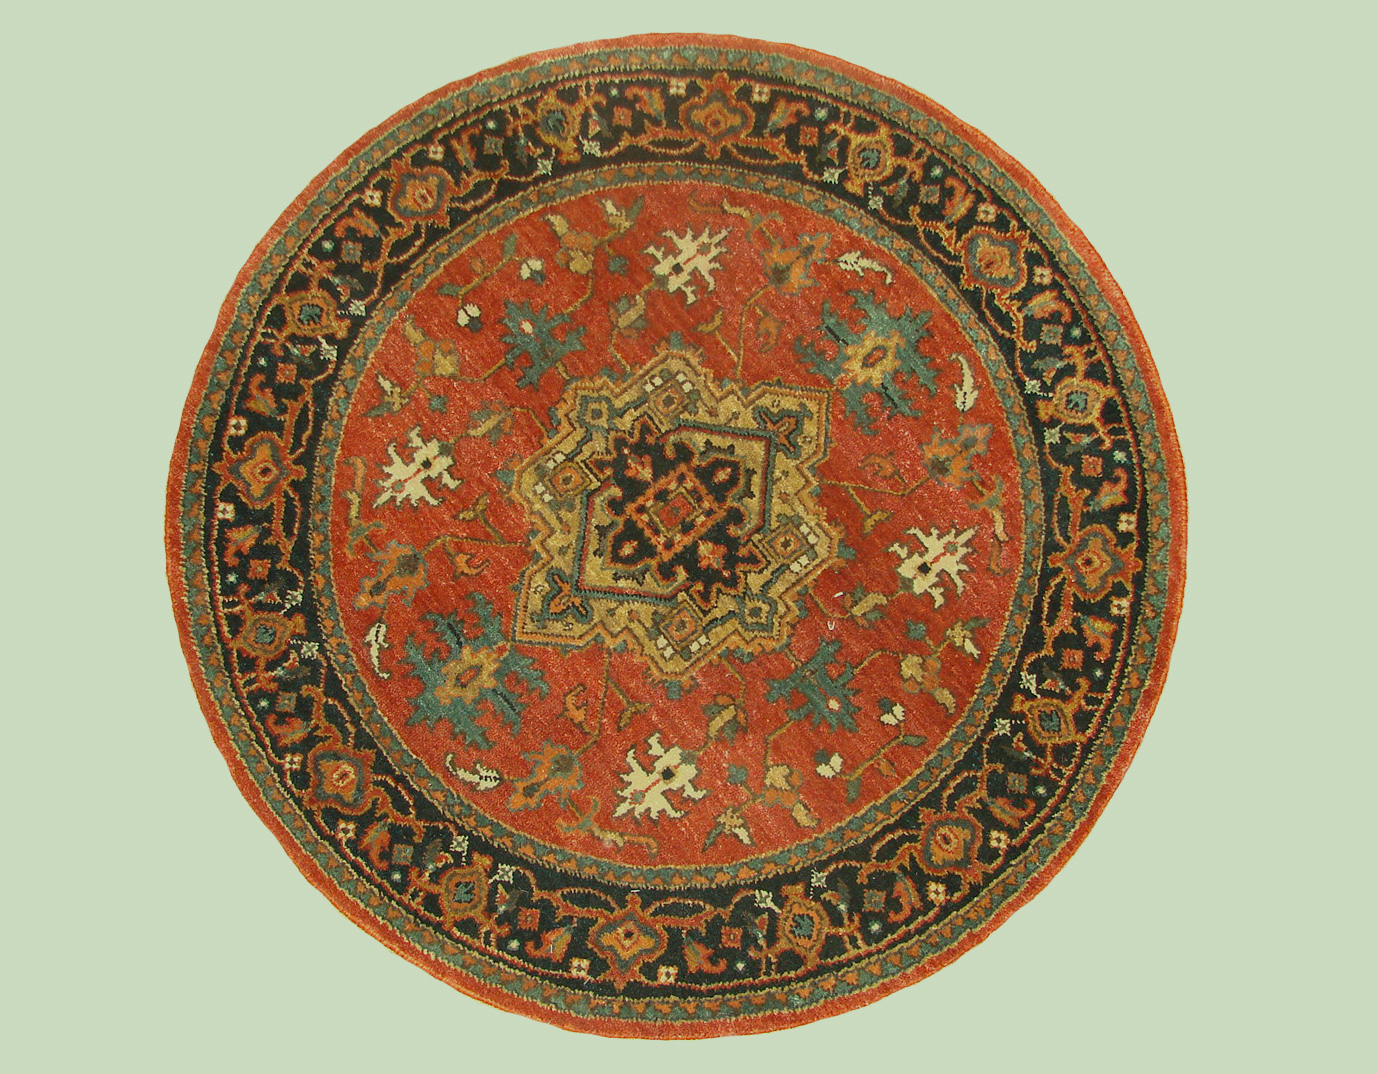 3 ft. Round & Square Heriz/Serapi Hand Knotted Wool Area Rug - MR19299